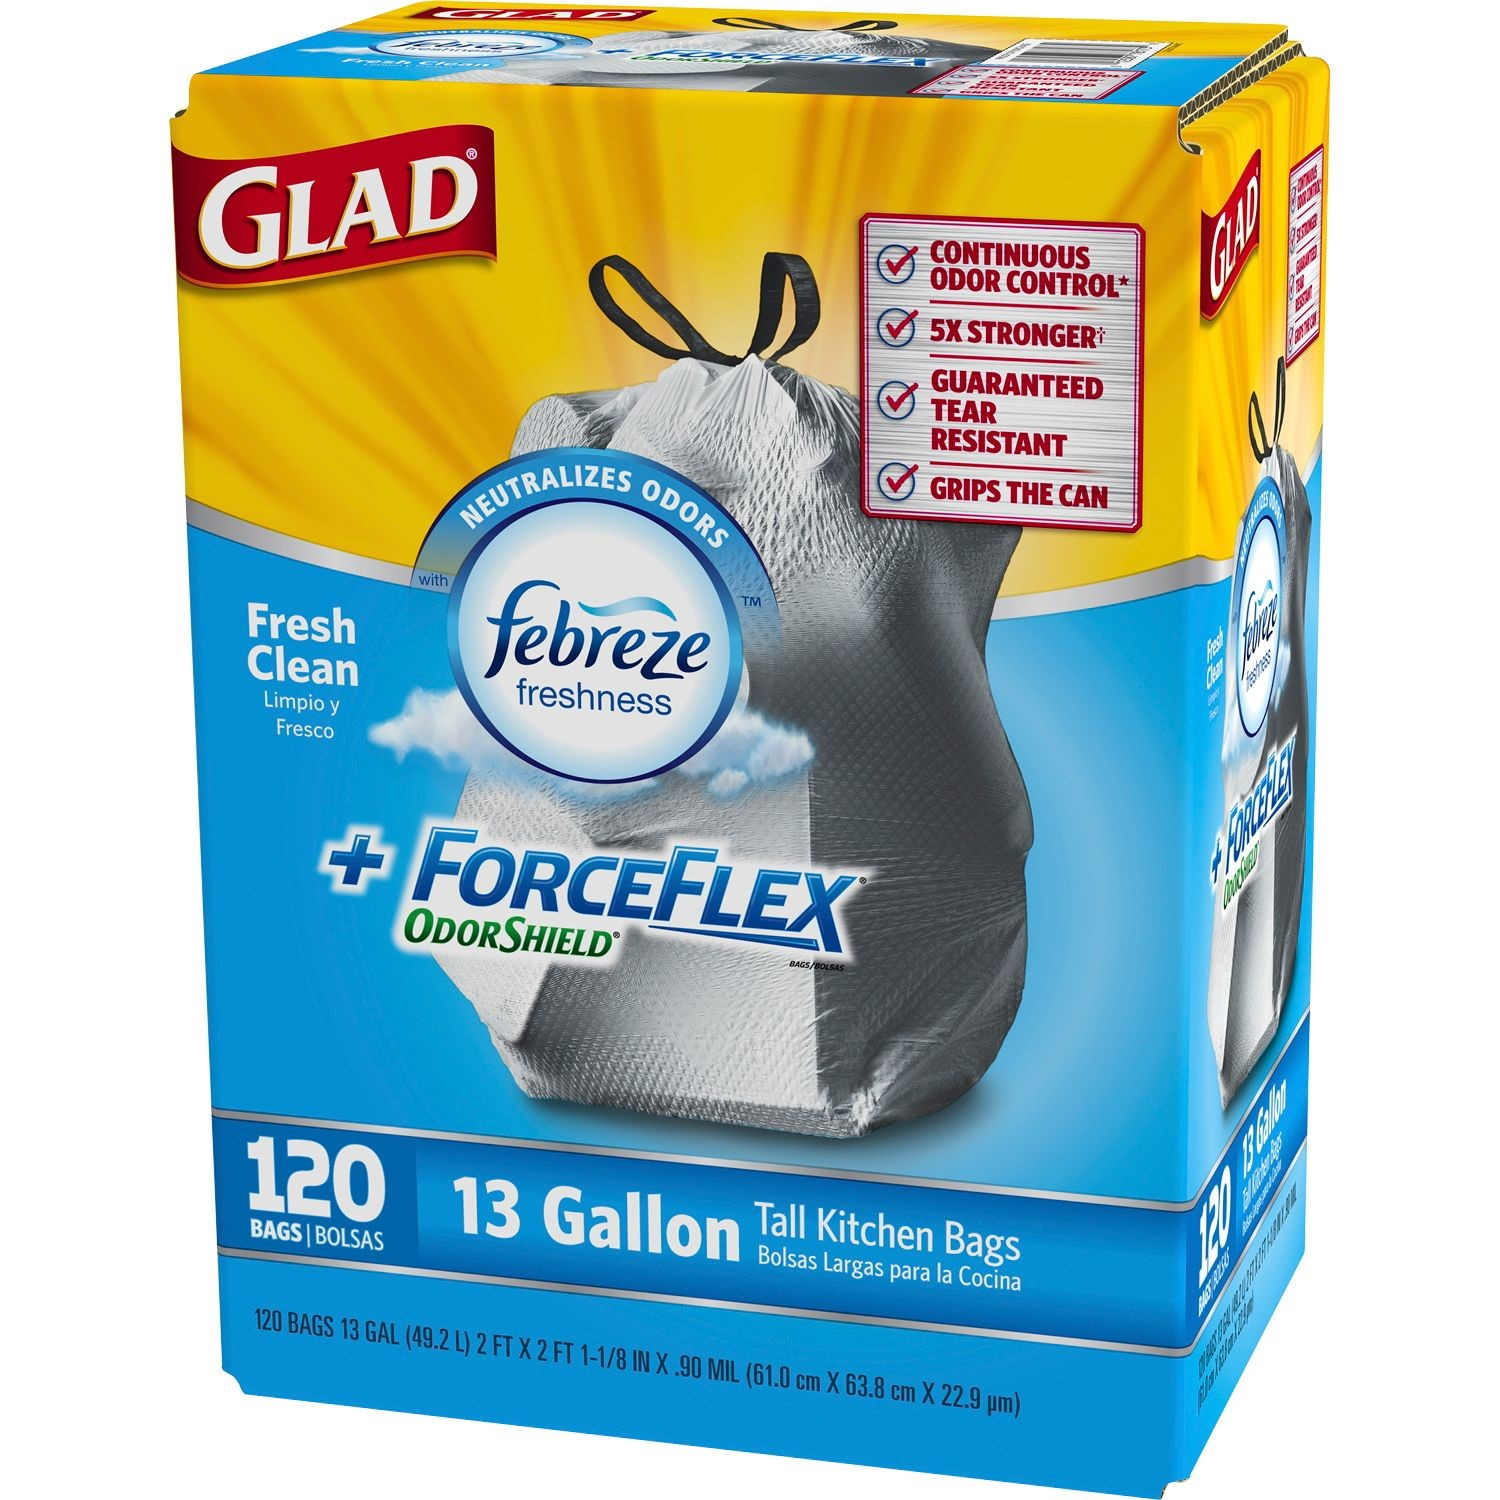 Glad Force Flex Odor Shield Drawstring, Fresh Clean Scent, 13 Gallon ...